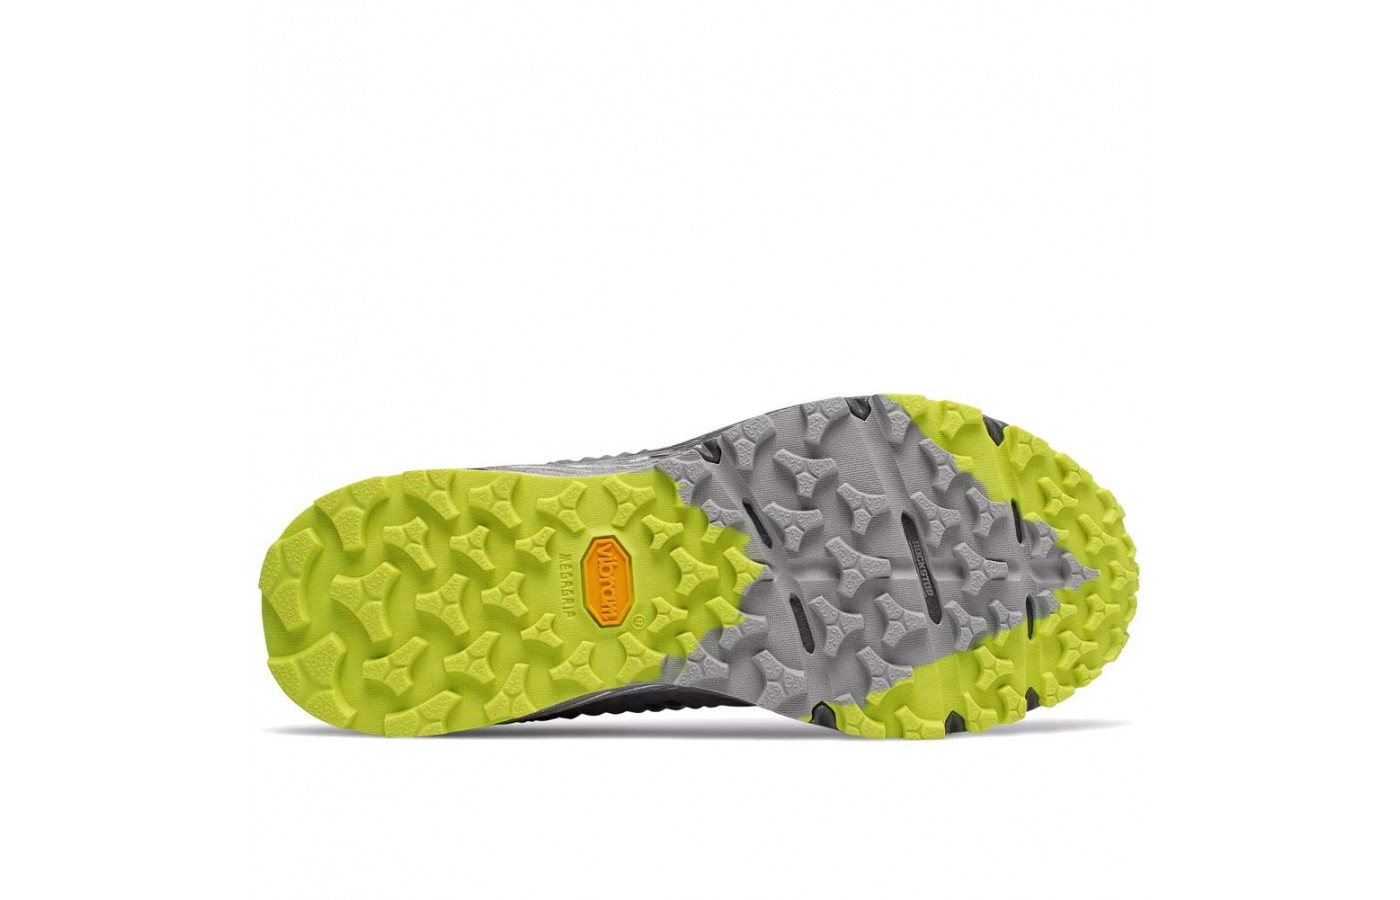 These shoes provide great traction.